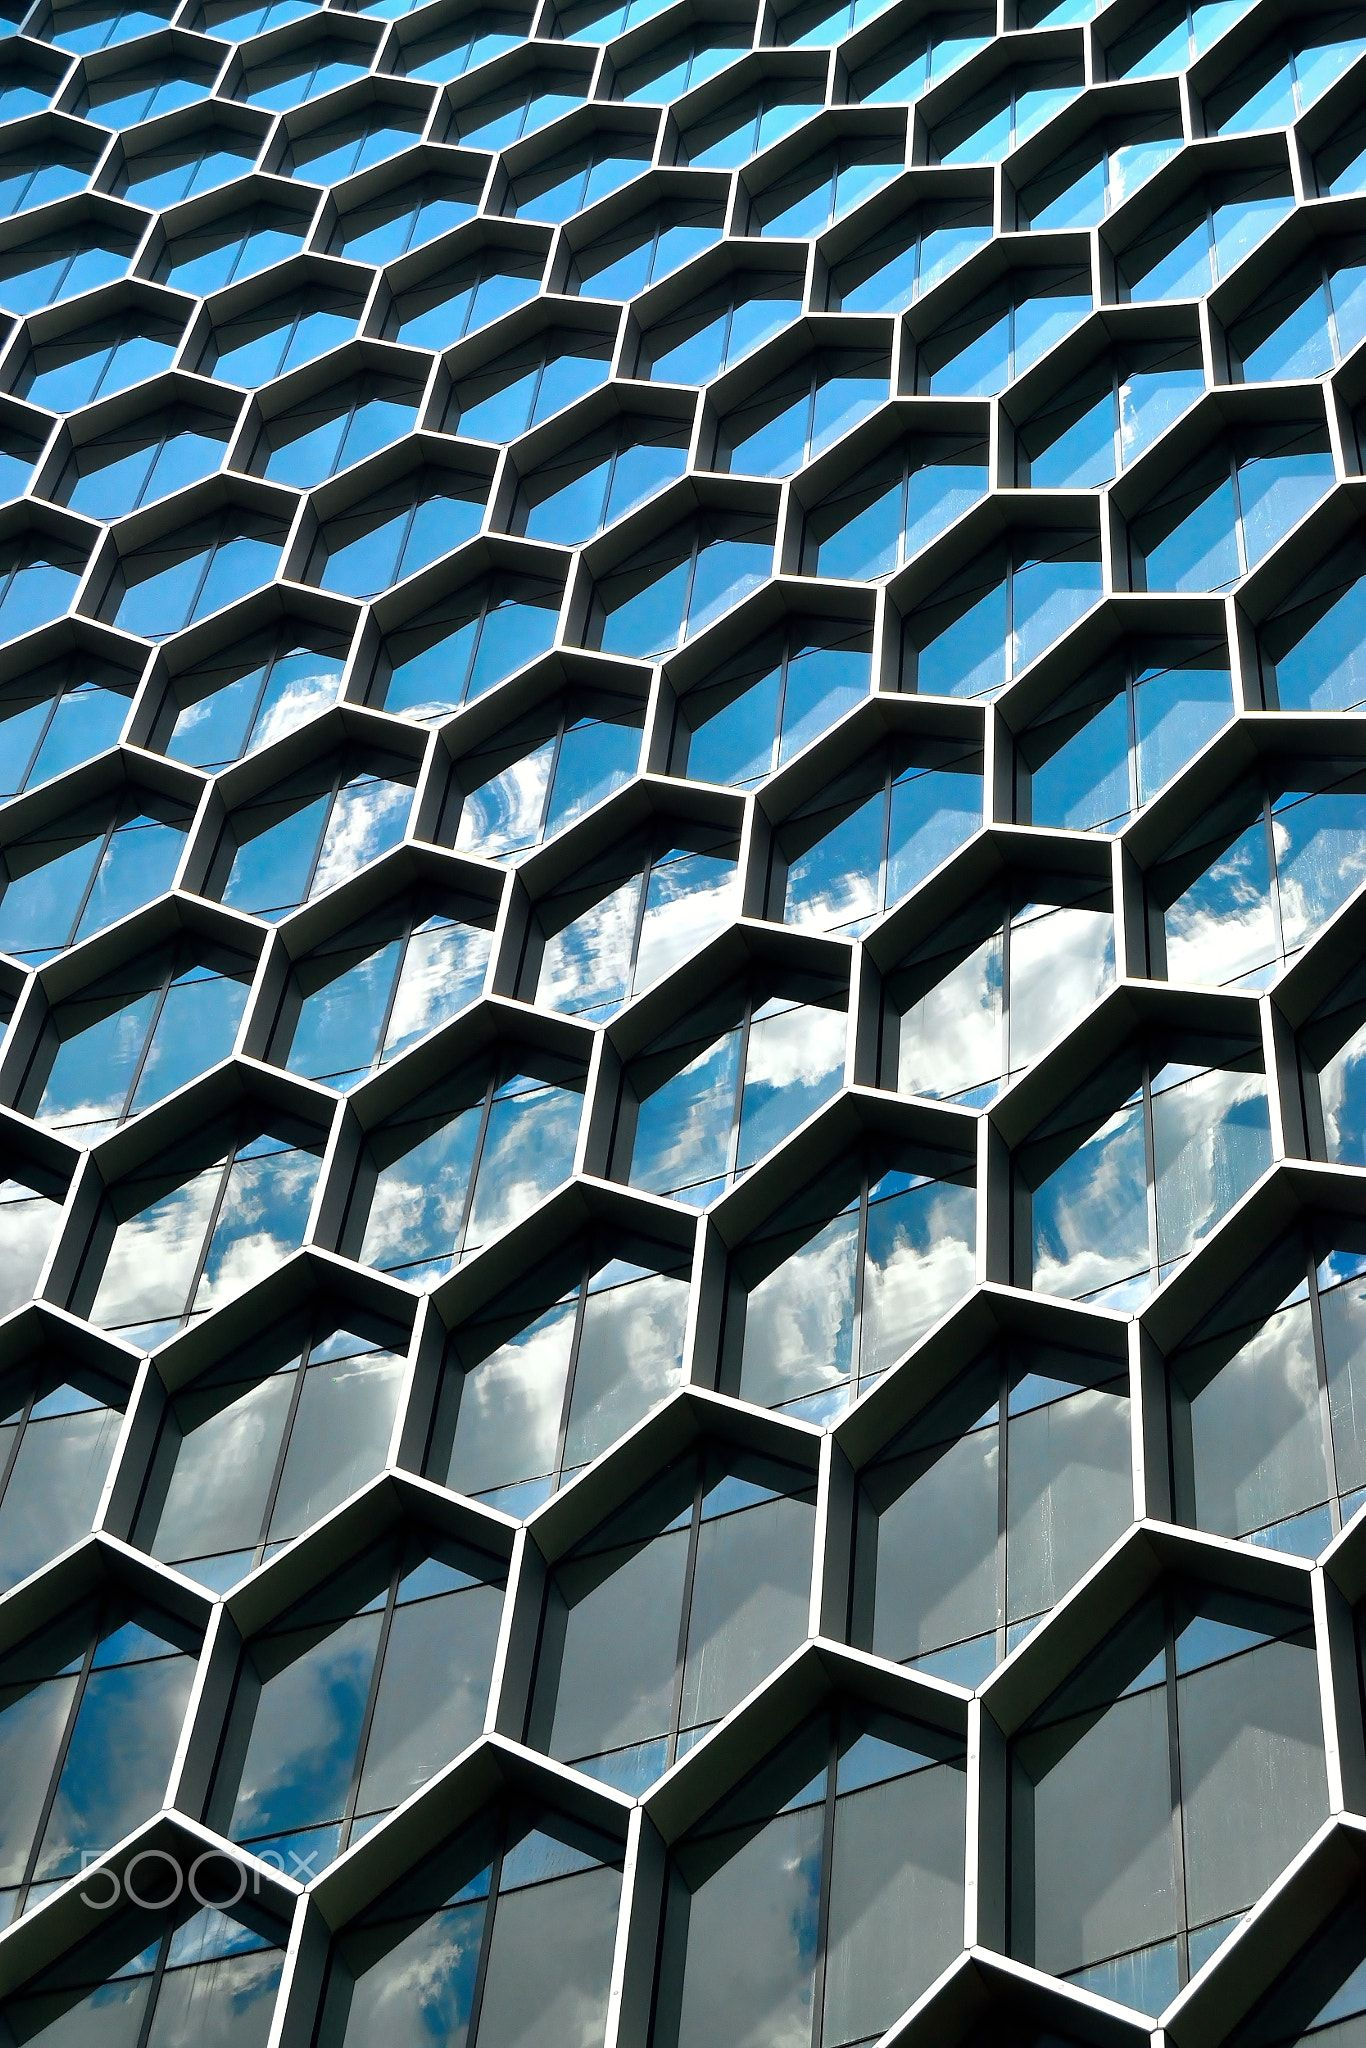 Hive Too - Vertical hexagonal geometry framing the sky in downtown ...